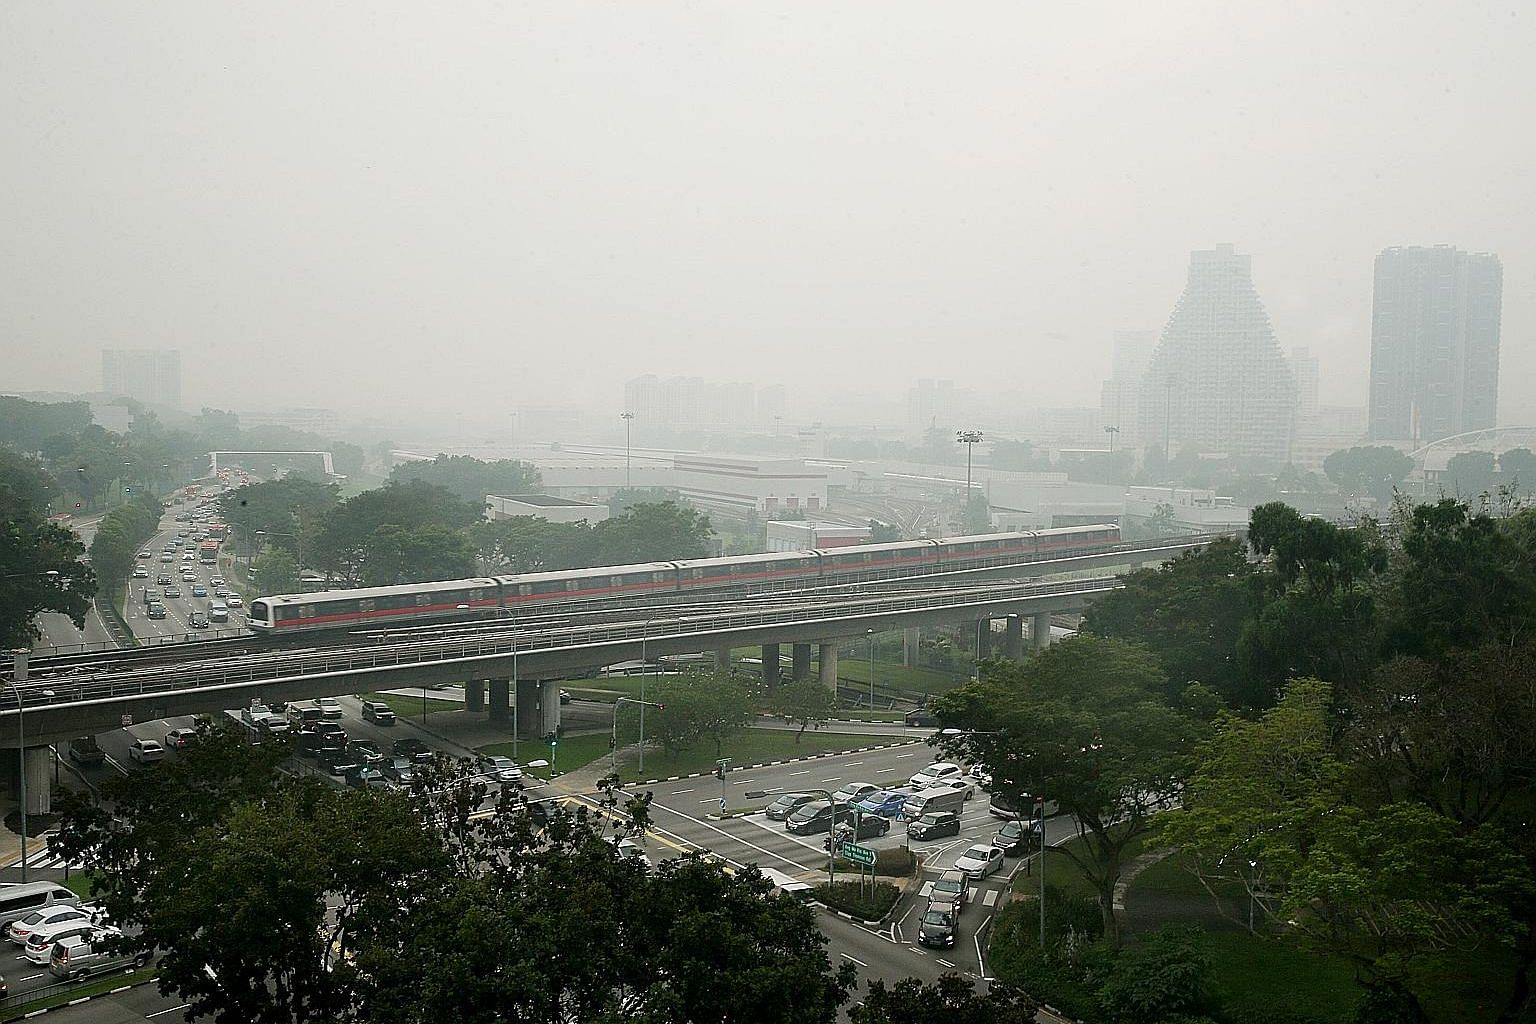 Hazy conditions in Bishan at 7am yesterday. The 24-hour PSI reached a high of 95 in southern Singapore at 8am and stayed in the moderate range across the island for the rest of the day.